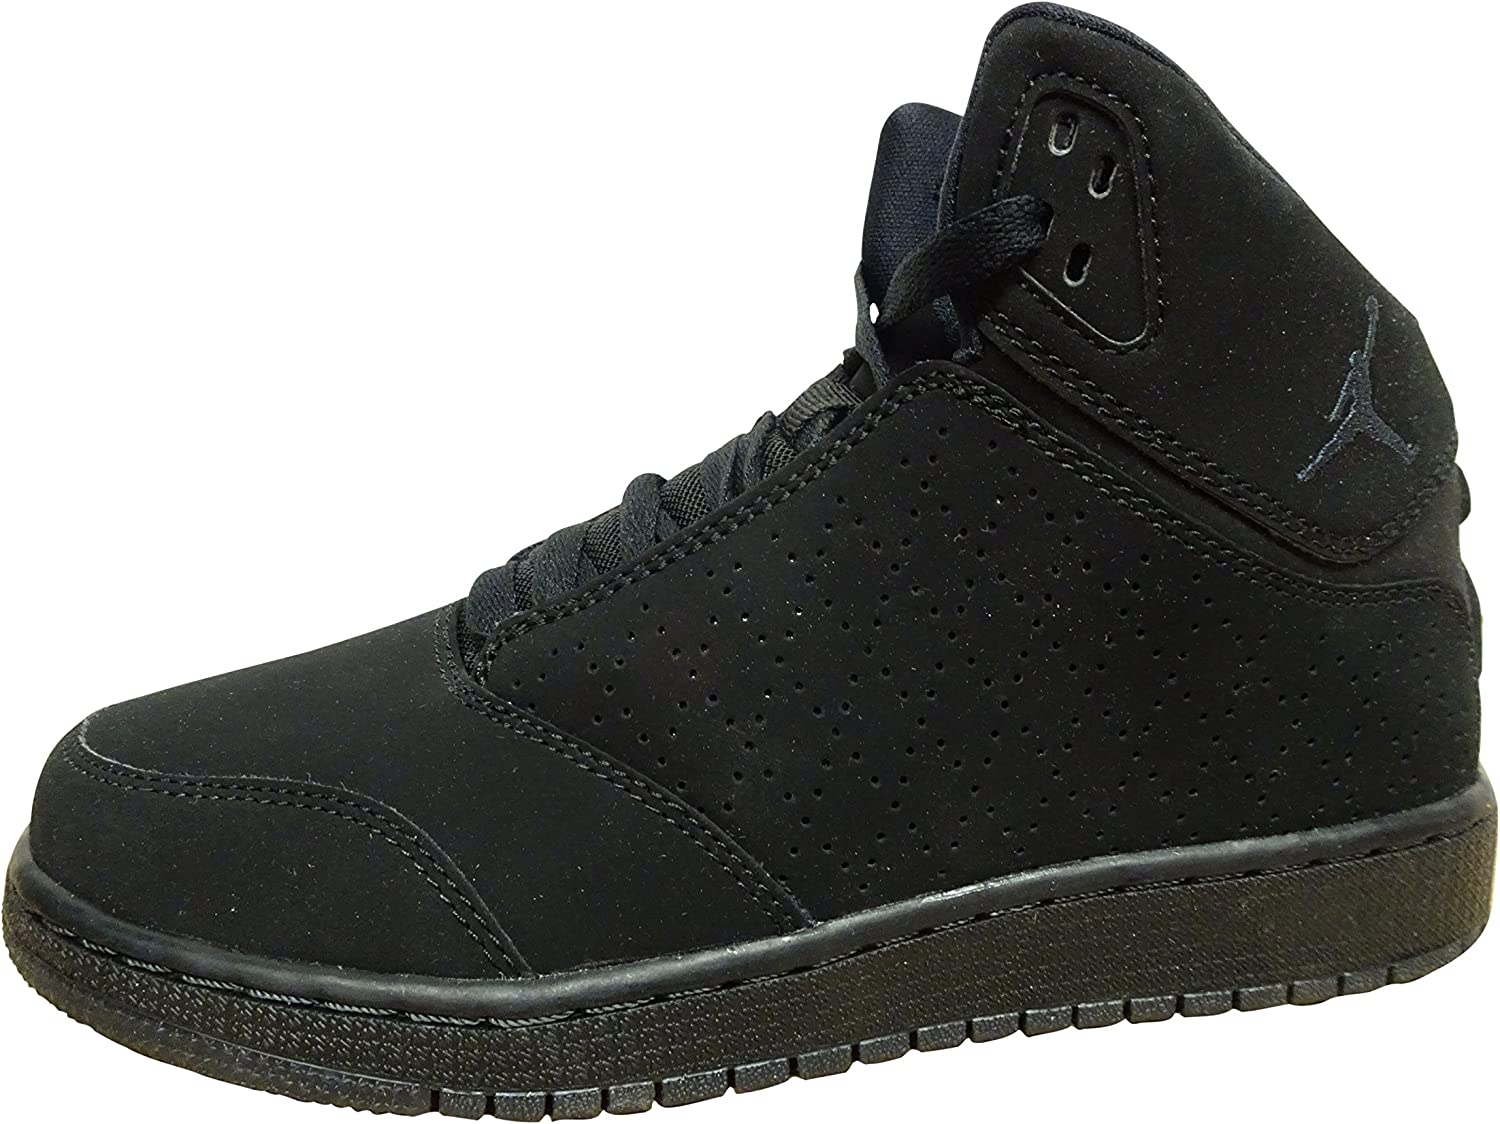 dedo vitamina Ondular  Nike air Jordan 1 Flight 5 prem BG hi top Trainers 881440 Sneakers Shoes (7  M US Big Kid, Black Anthracite 010): Amazon.ca: Shoes & Handbags